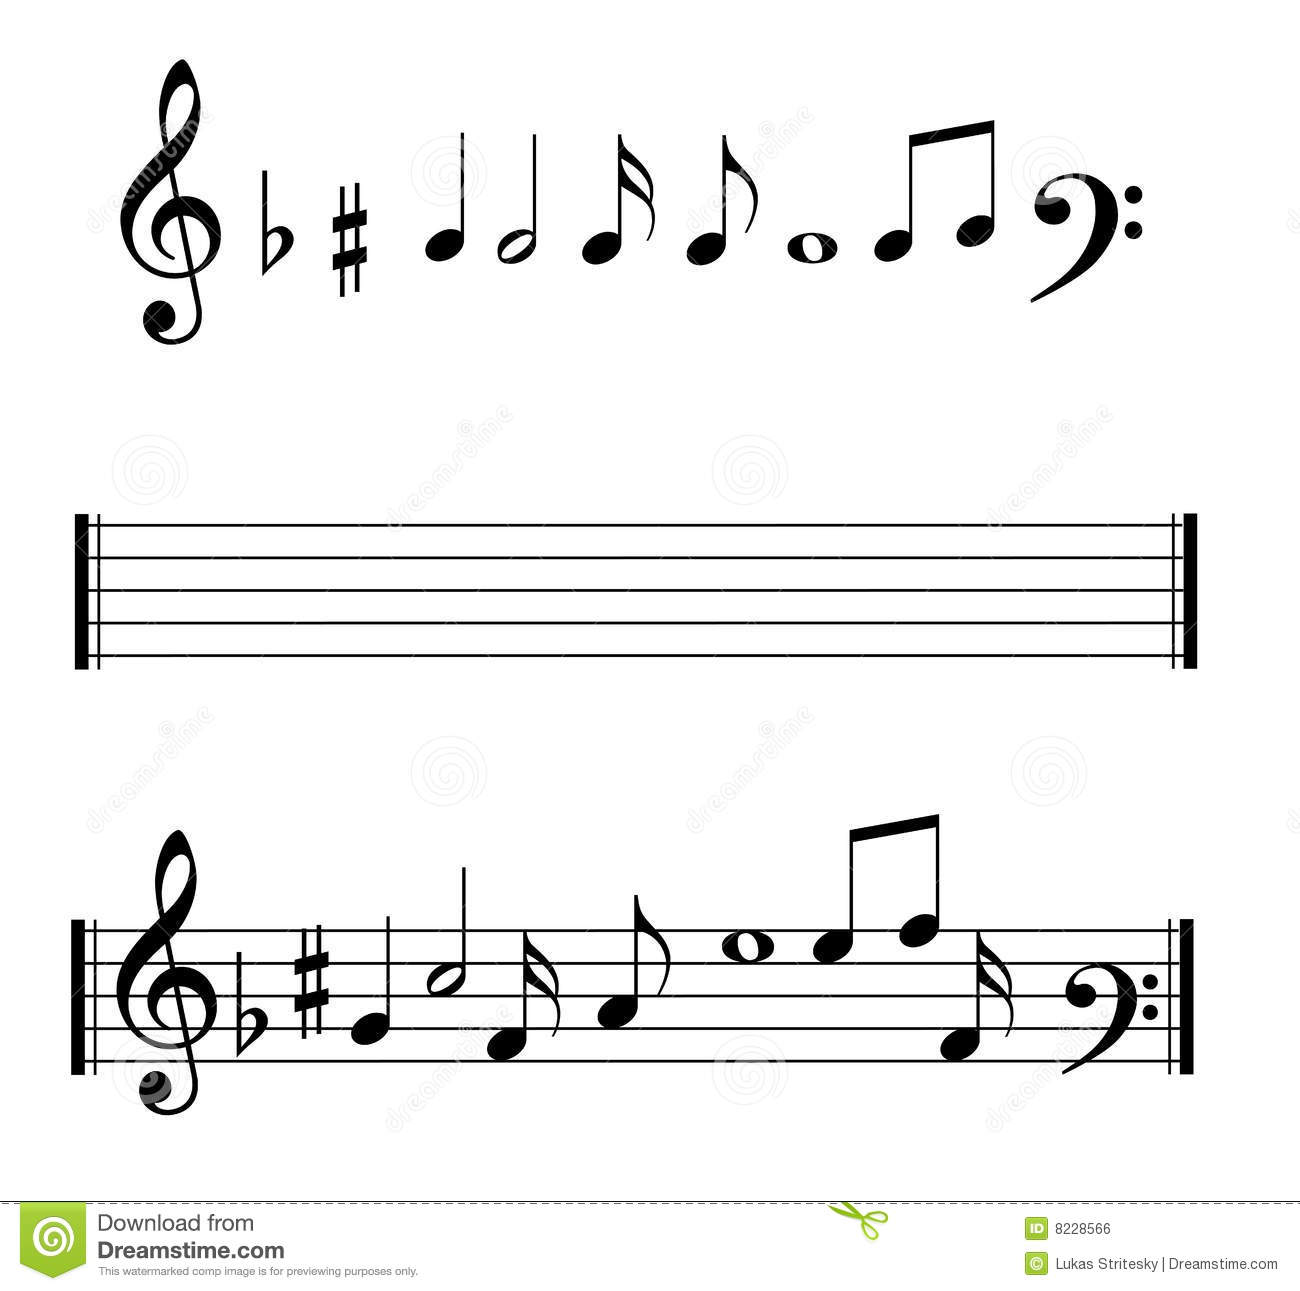 Musical notes symbols set stock vector illustration of clef 8228566 musical notes symbols set biocorpaavc Image collections